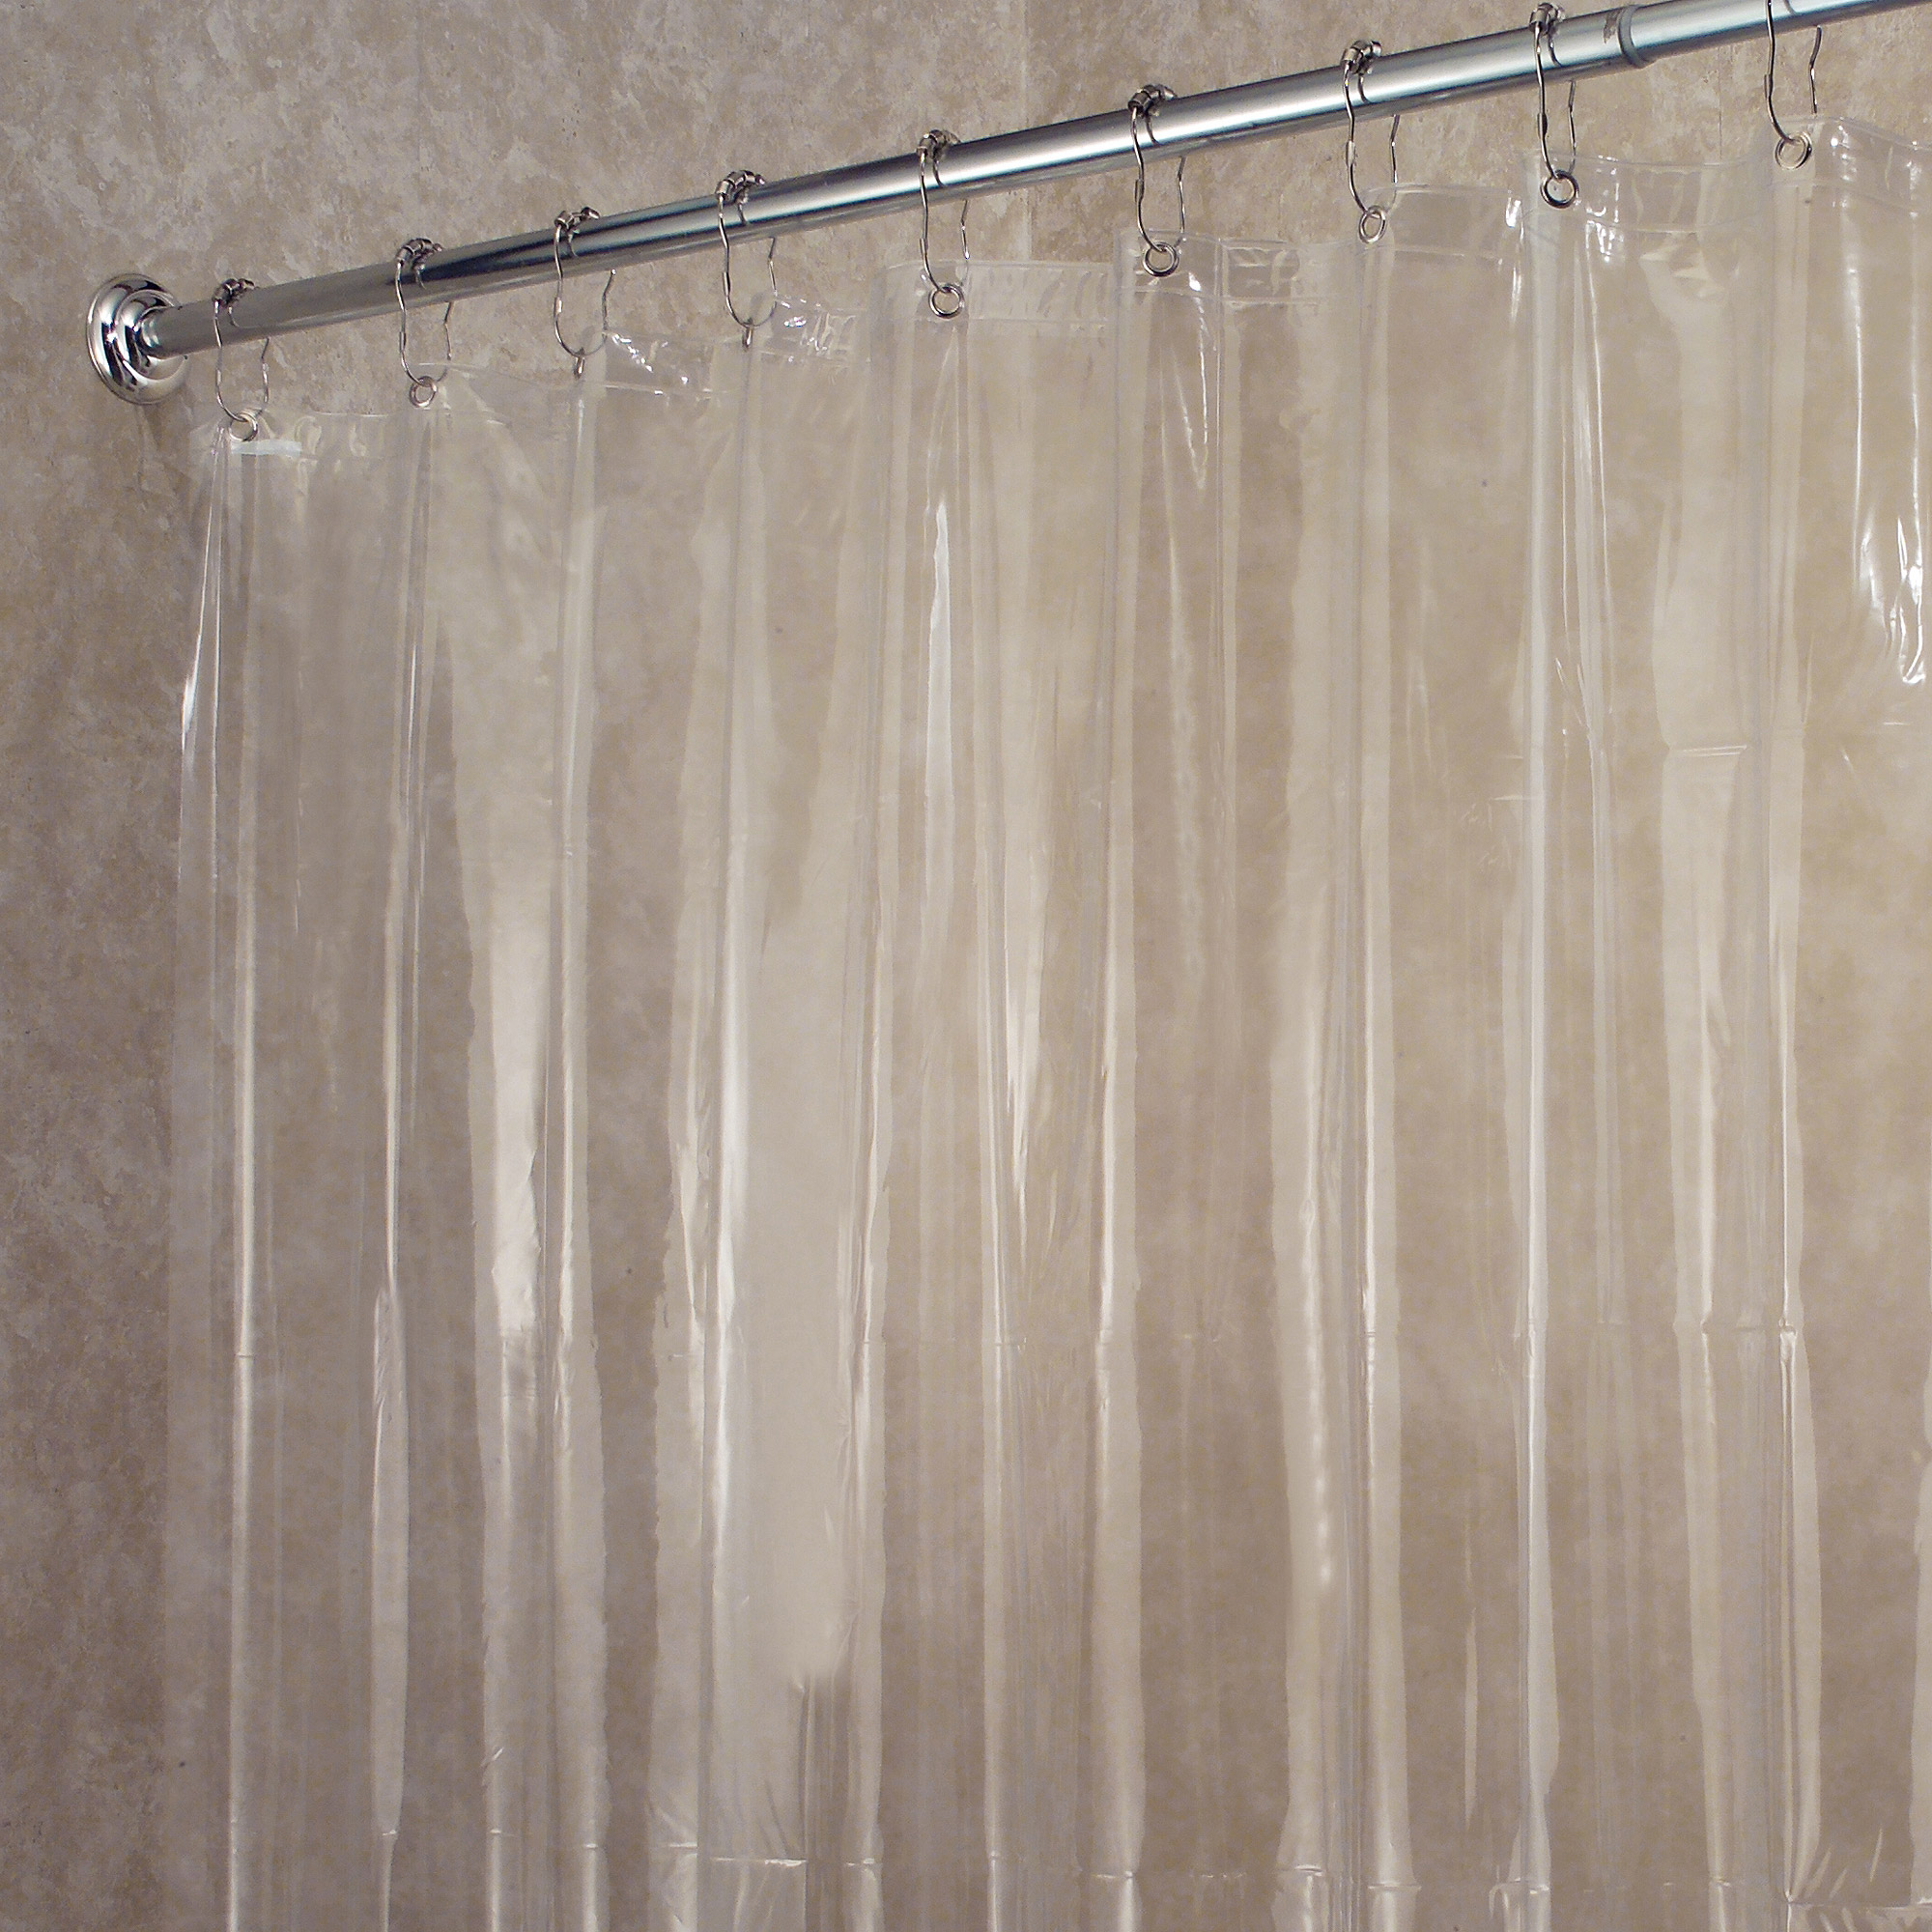 Bed Bath and Beyond Shower Curtain Liner | Shower Curtain Liner | Hookless Shower Curtain Liner